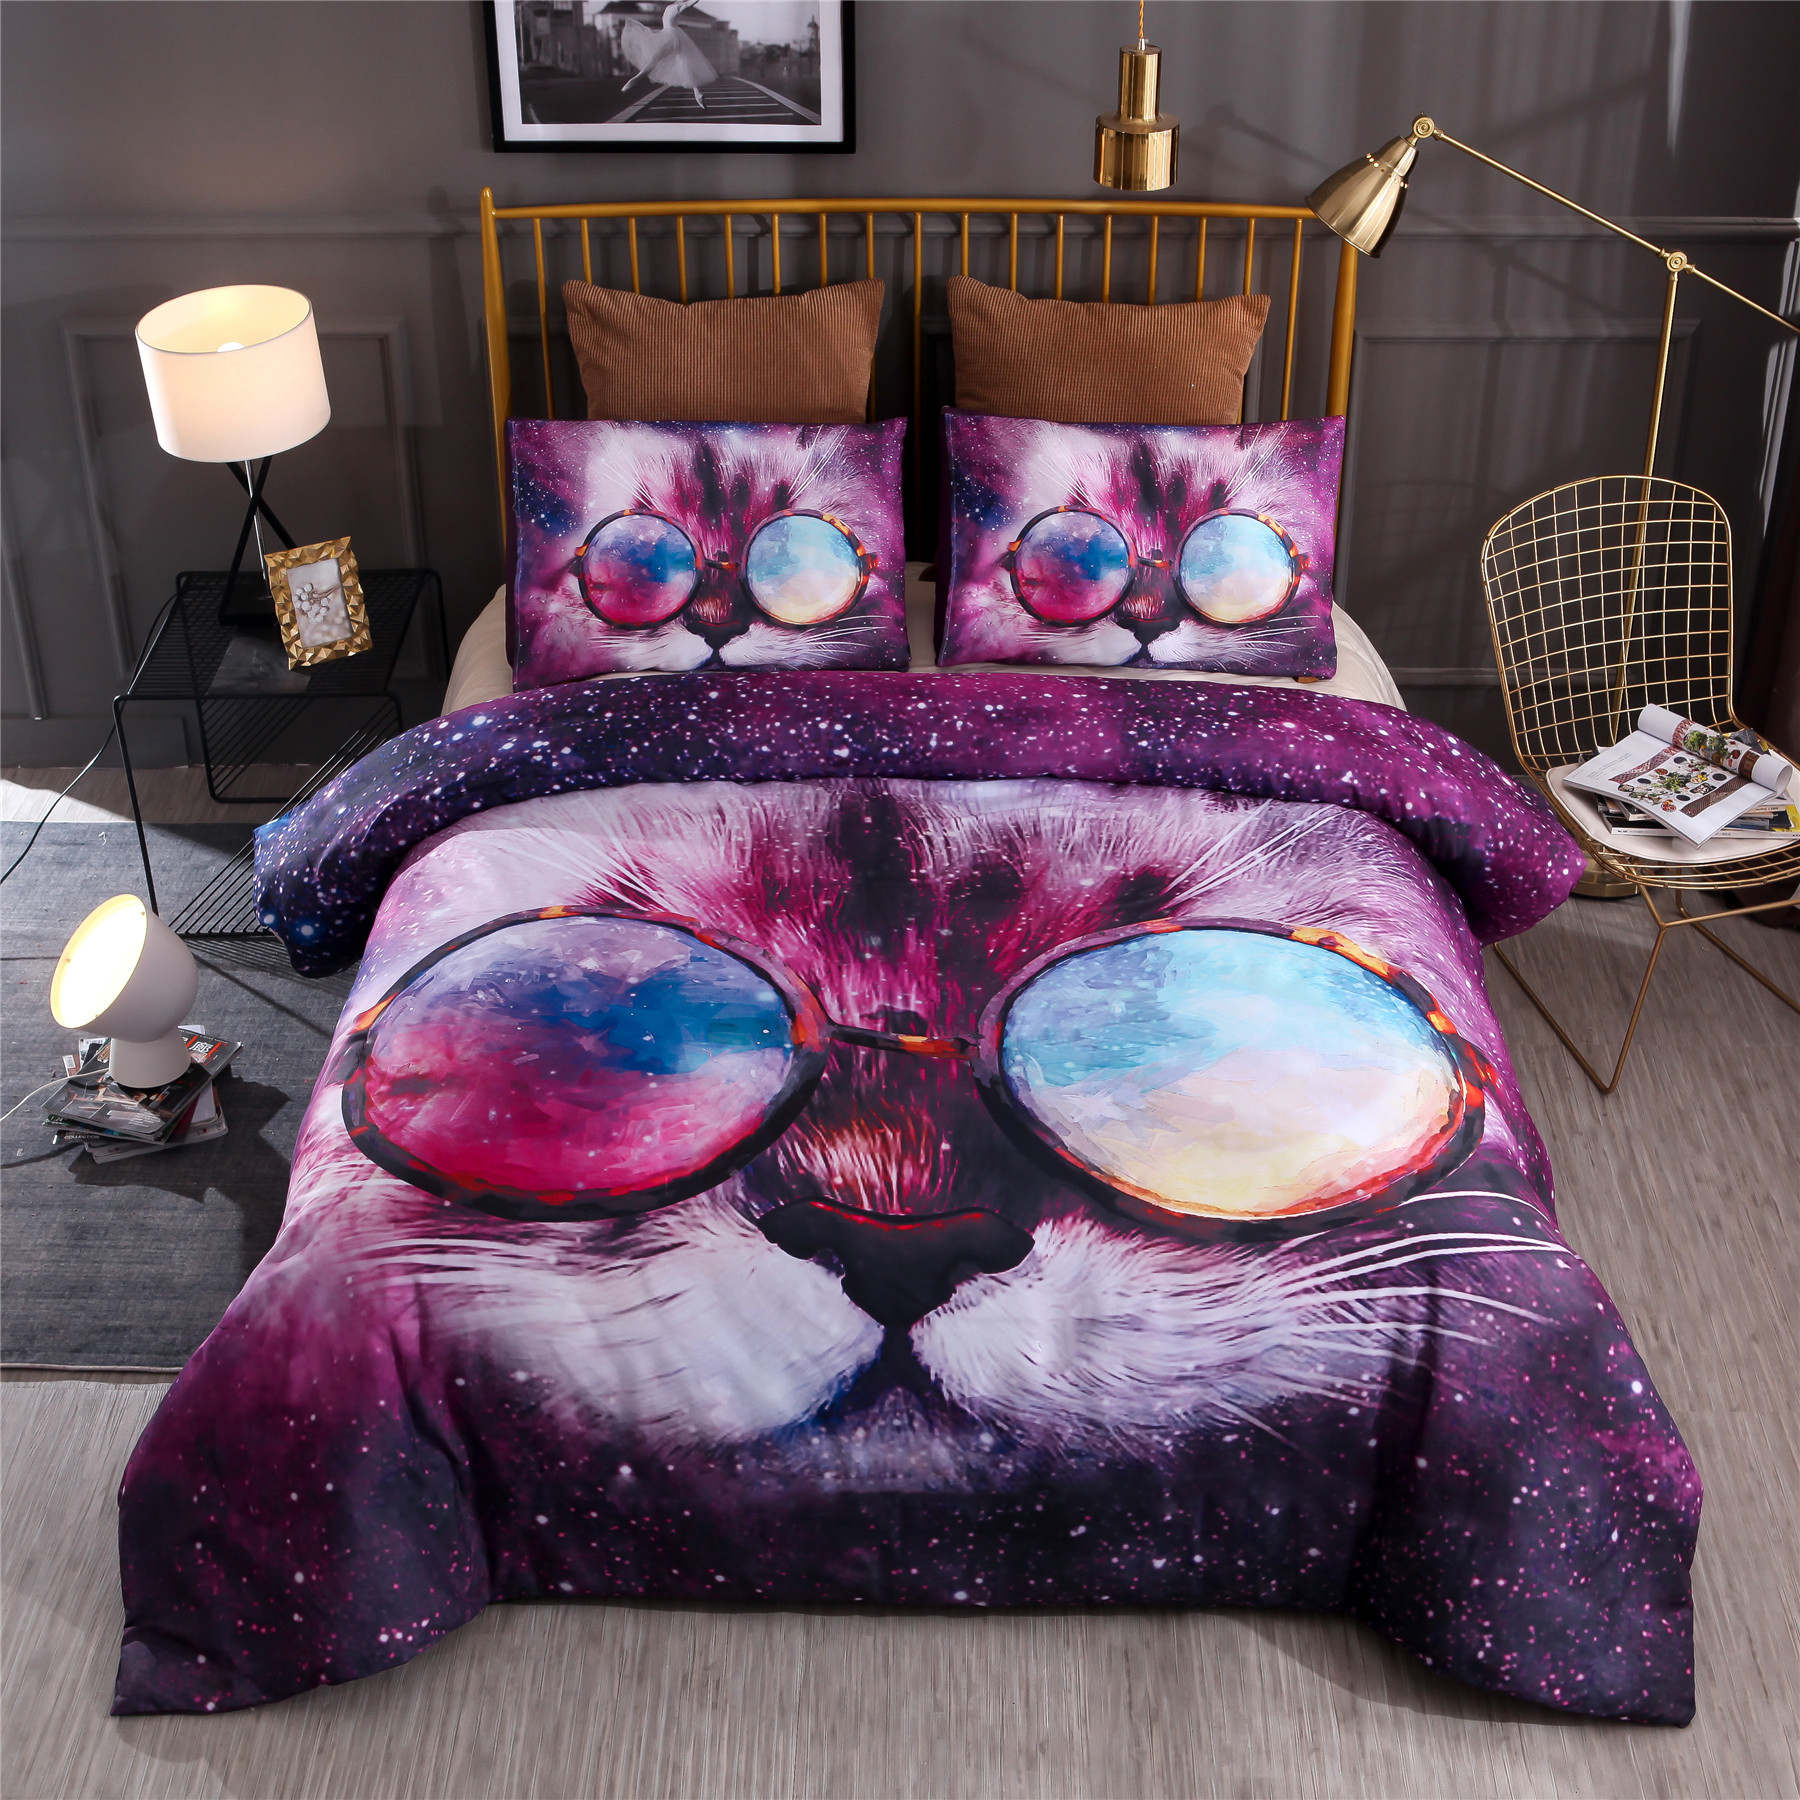 BEST.WENSD Galaxy Animals Bedding Sets 3D Cat Duvet Cover Pilowcases Comforter Bedding Sets European and American Style Bed Sets